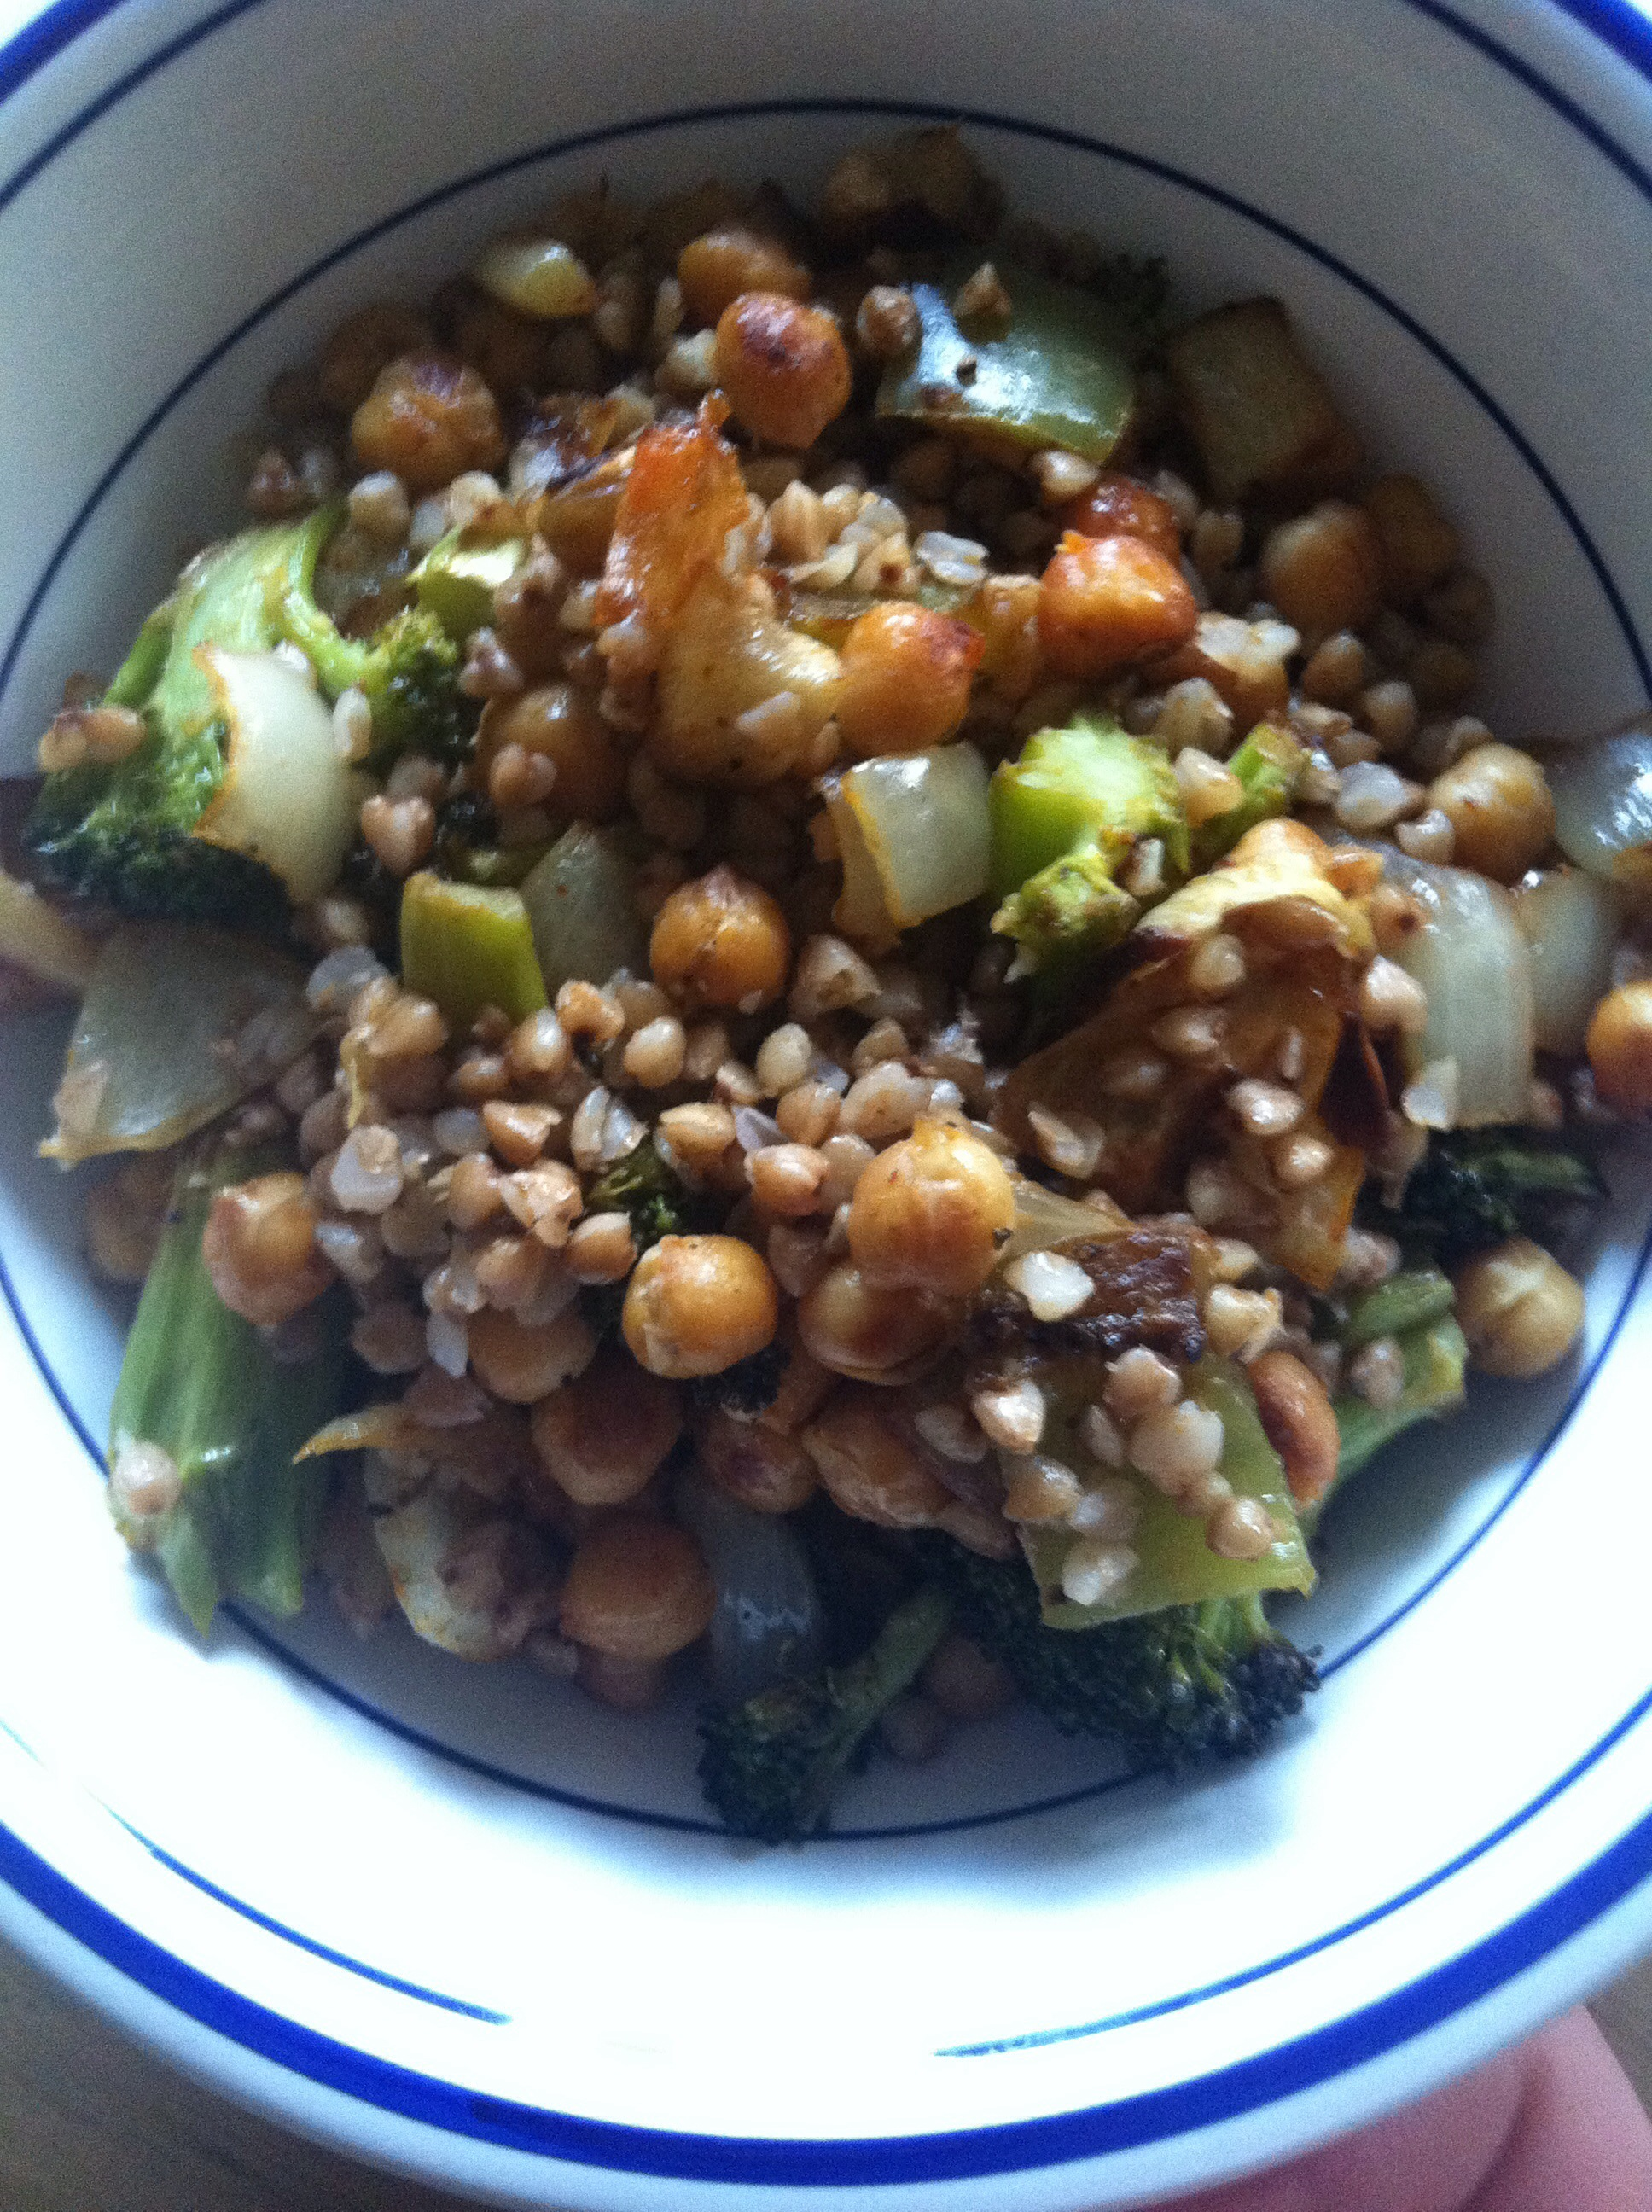 Warm Buckwheat, Chickpea and Veggie Salad | xtinaluvspink.wordpress.com